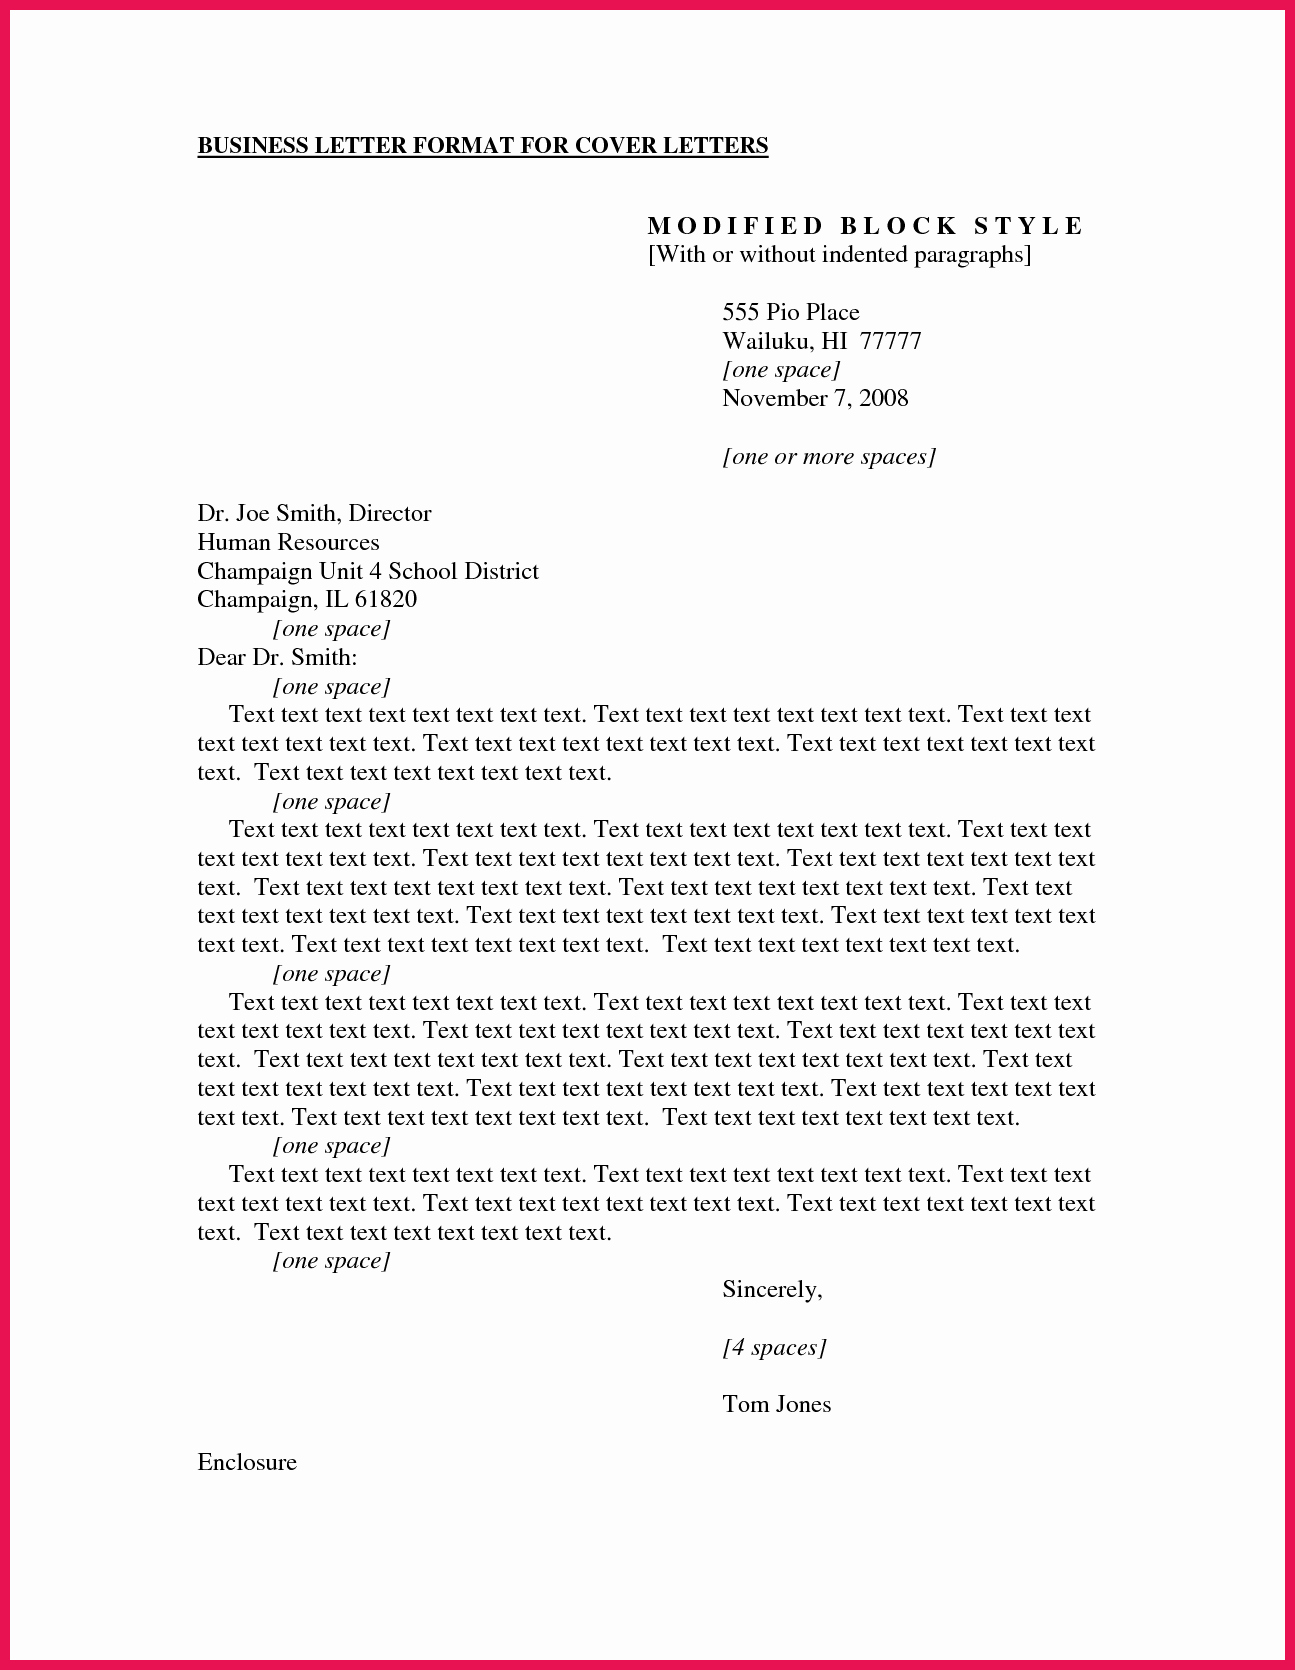 Standard Business Letter format Template Inspirational Business Cover Letter format